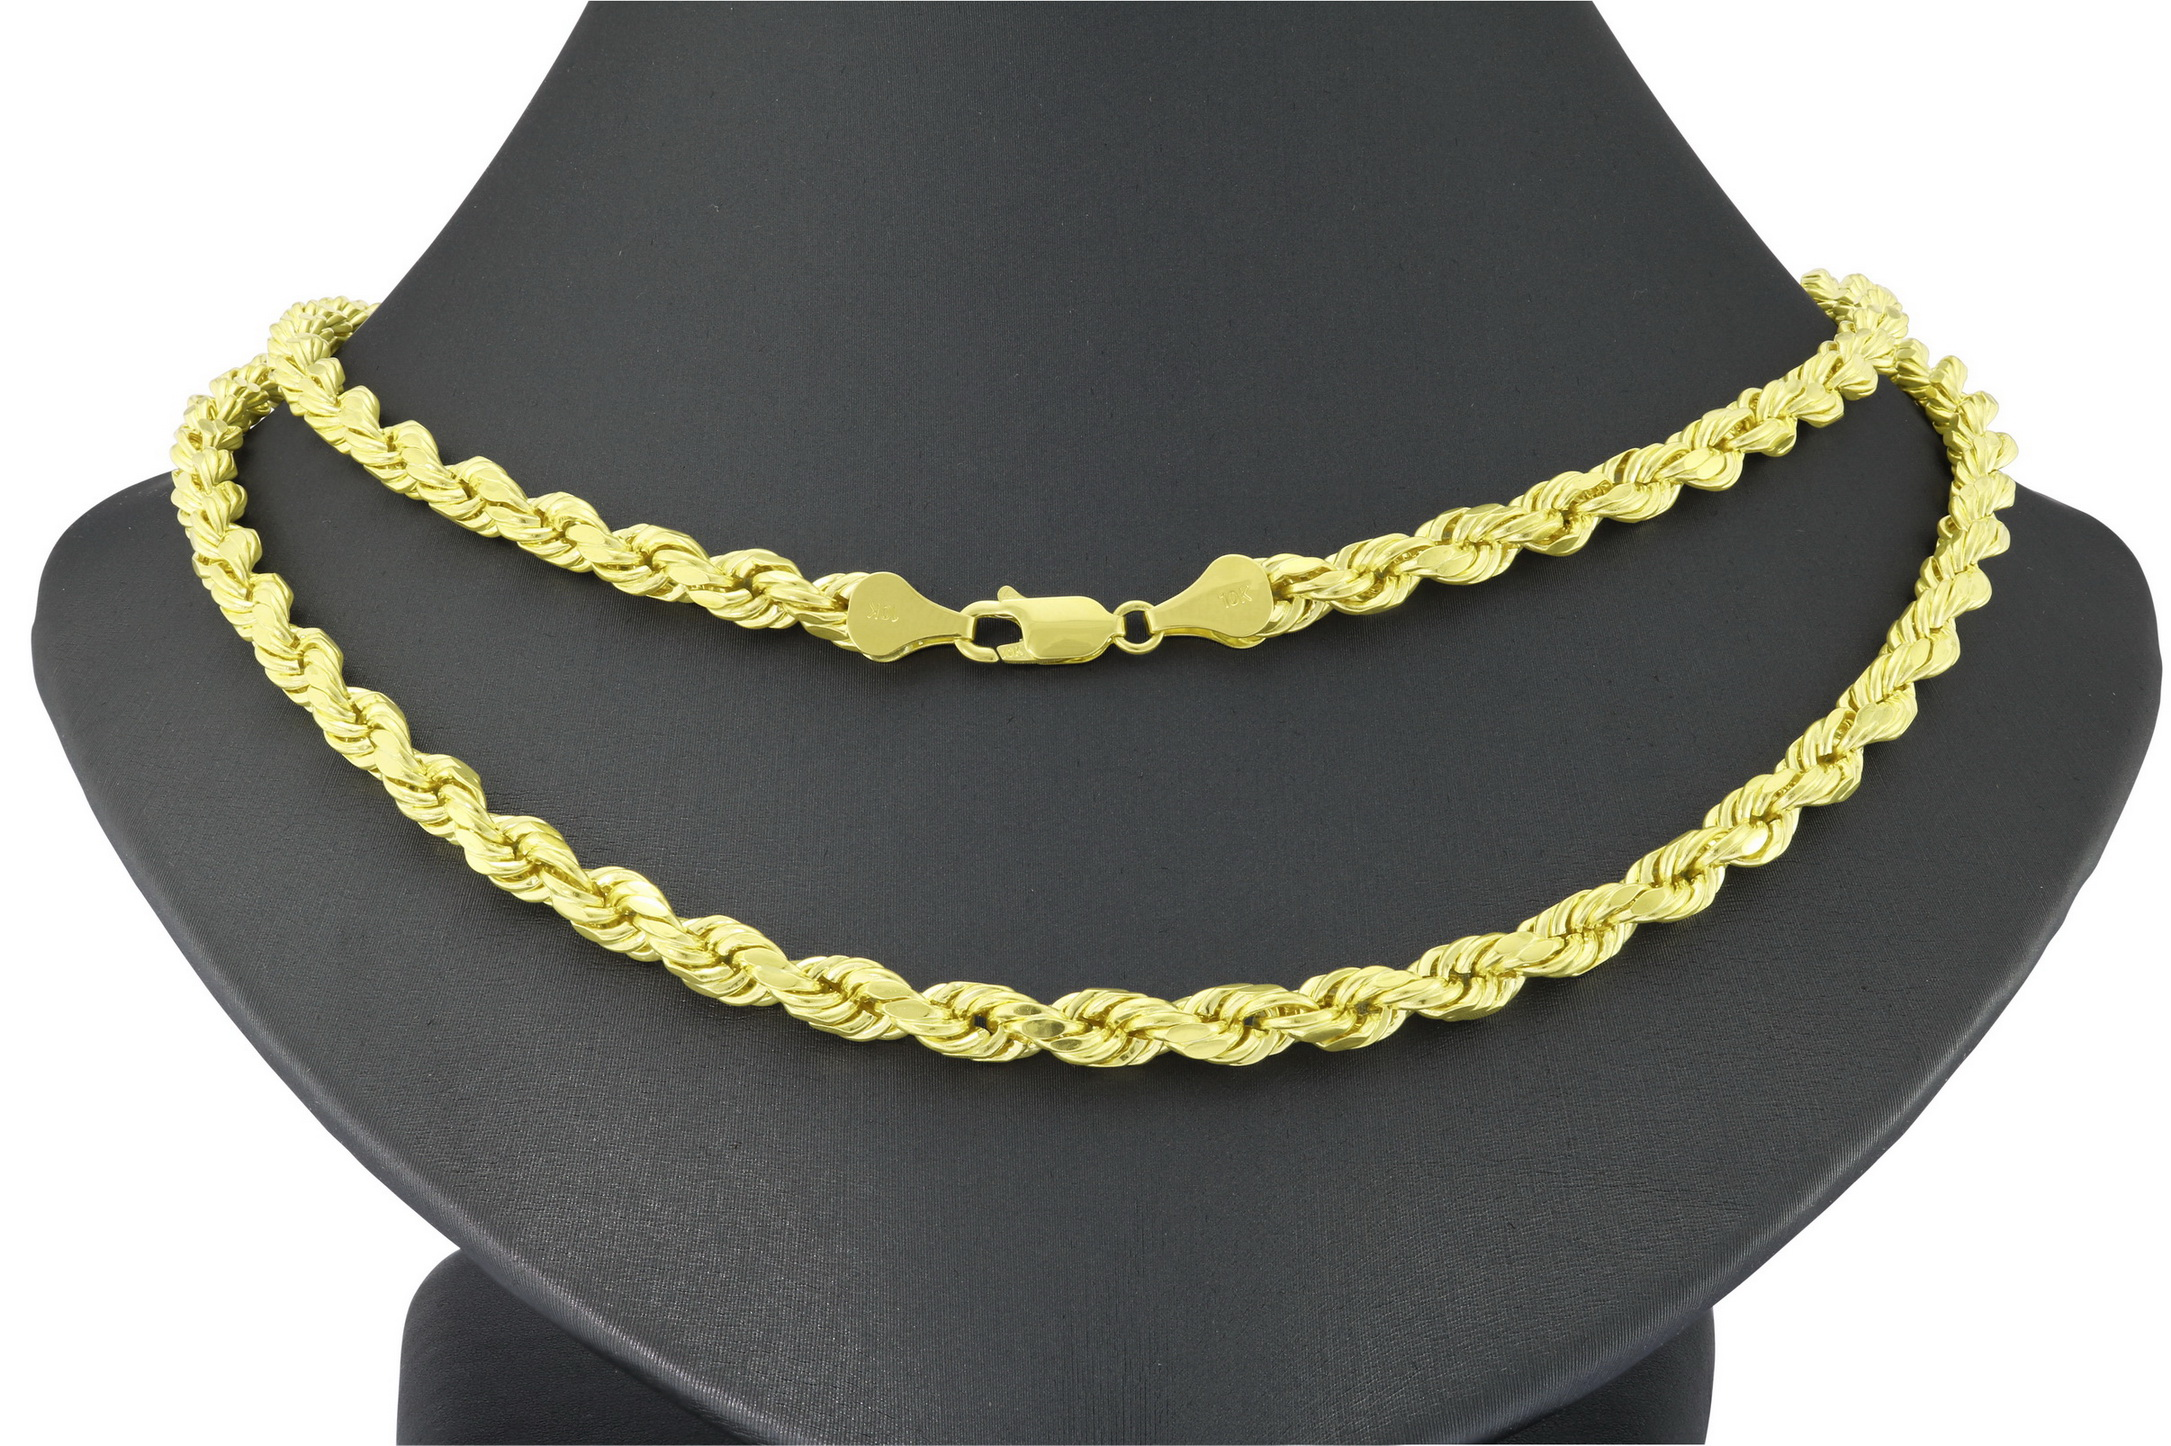 Solid-10k-Yellow-Gold-Mens-Thick-6mm-Diamond-Cut-Rope-Chain-Necklace-20-034-30-034 thumbnail 22